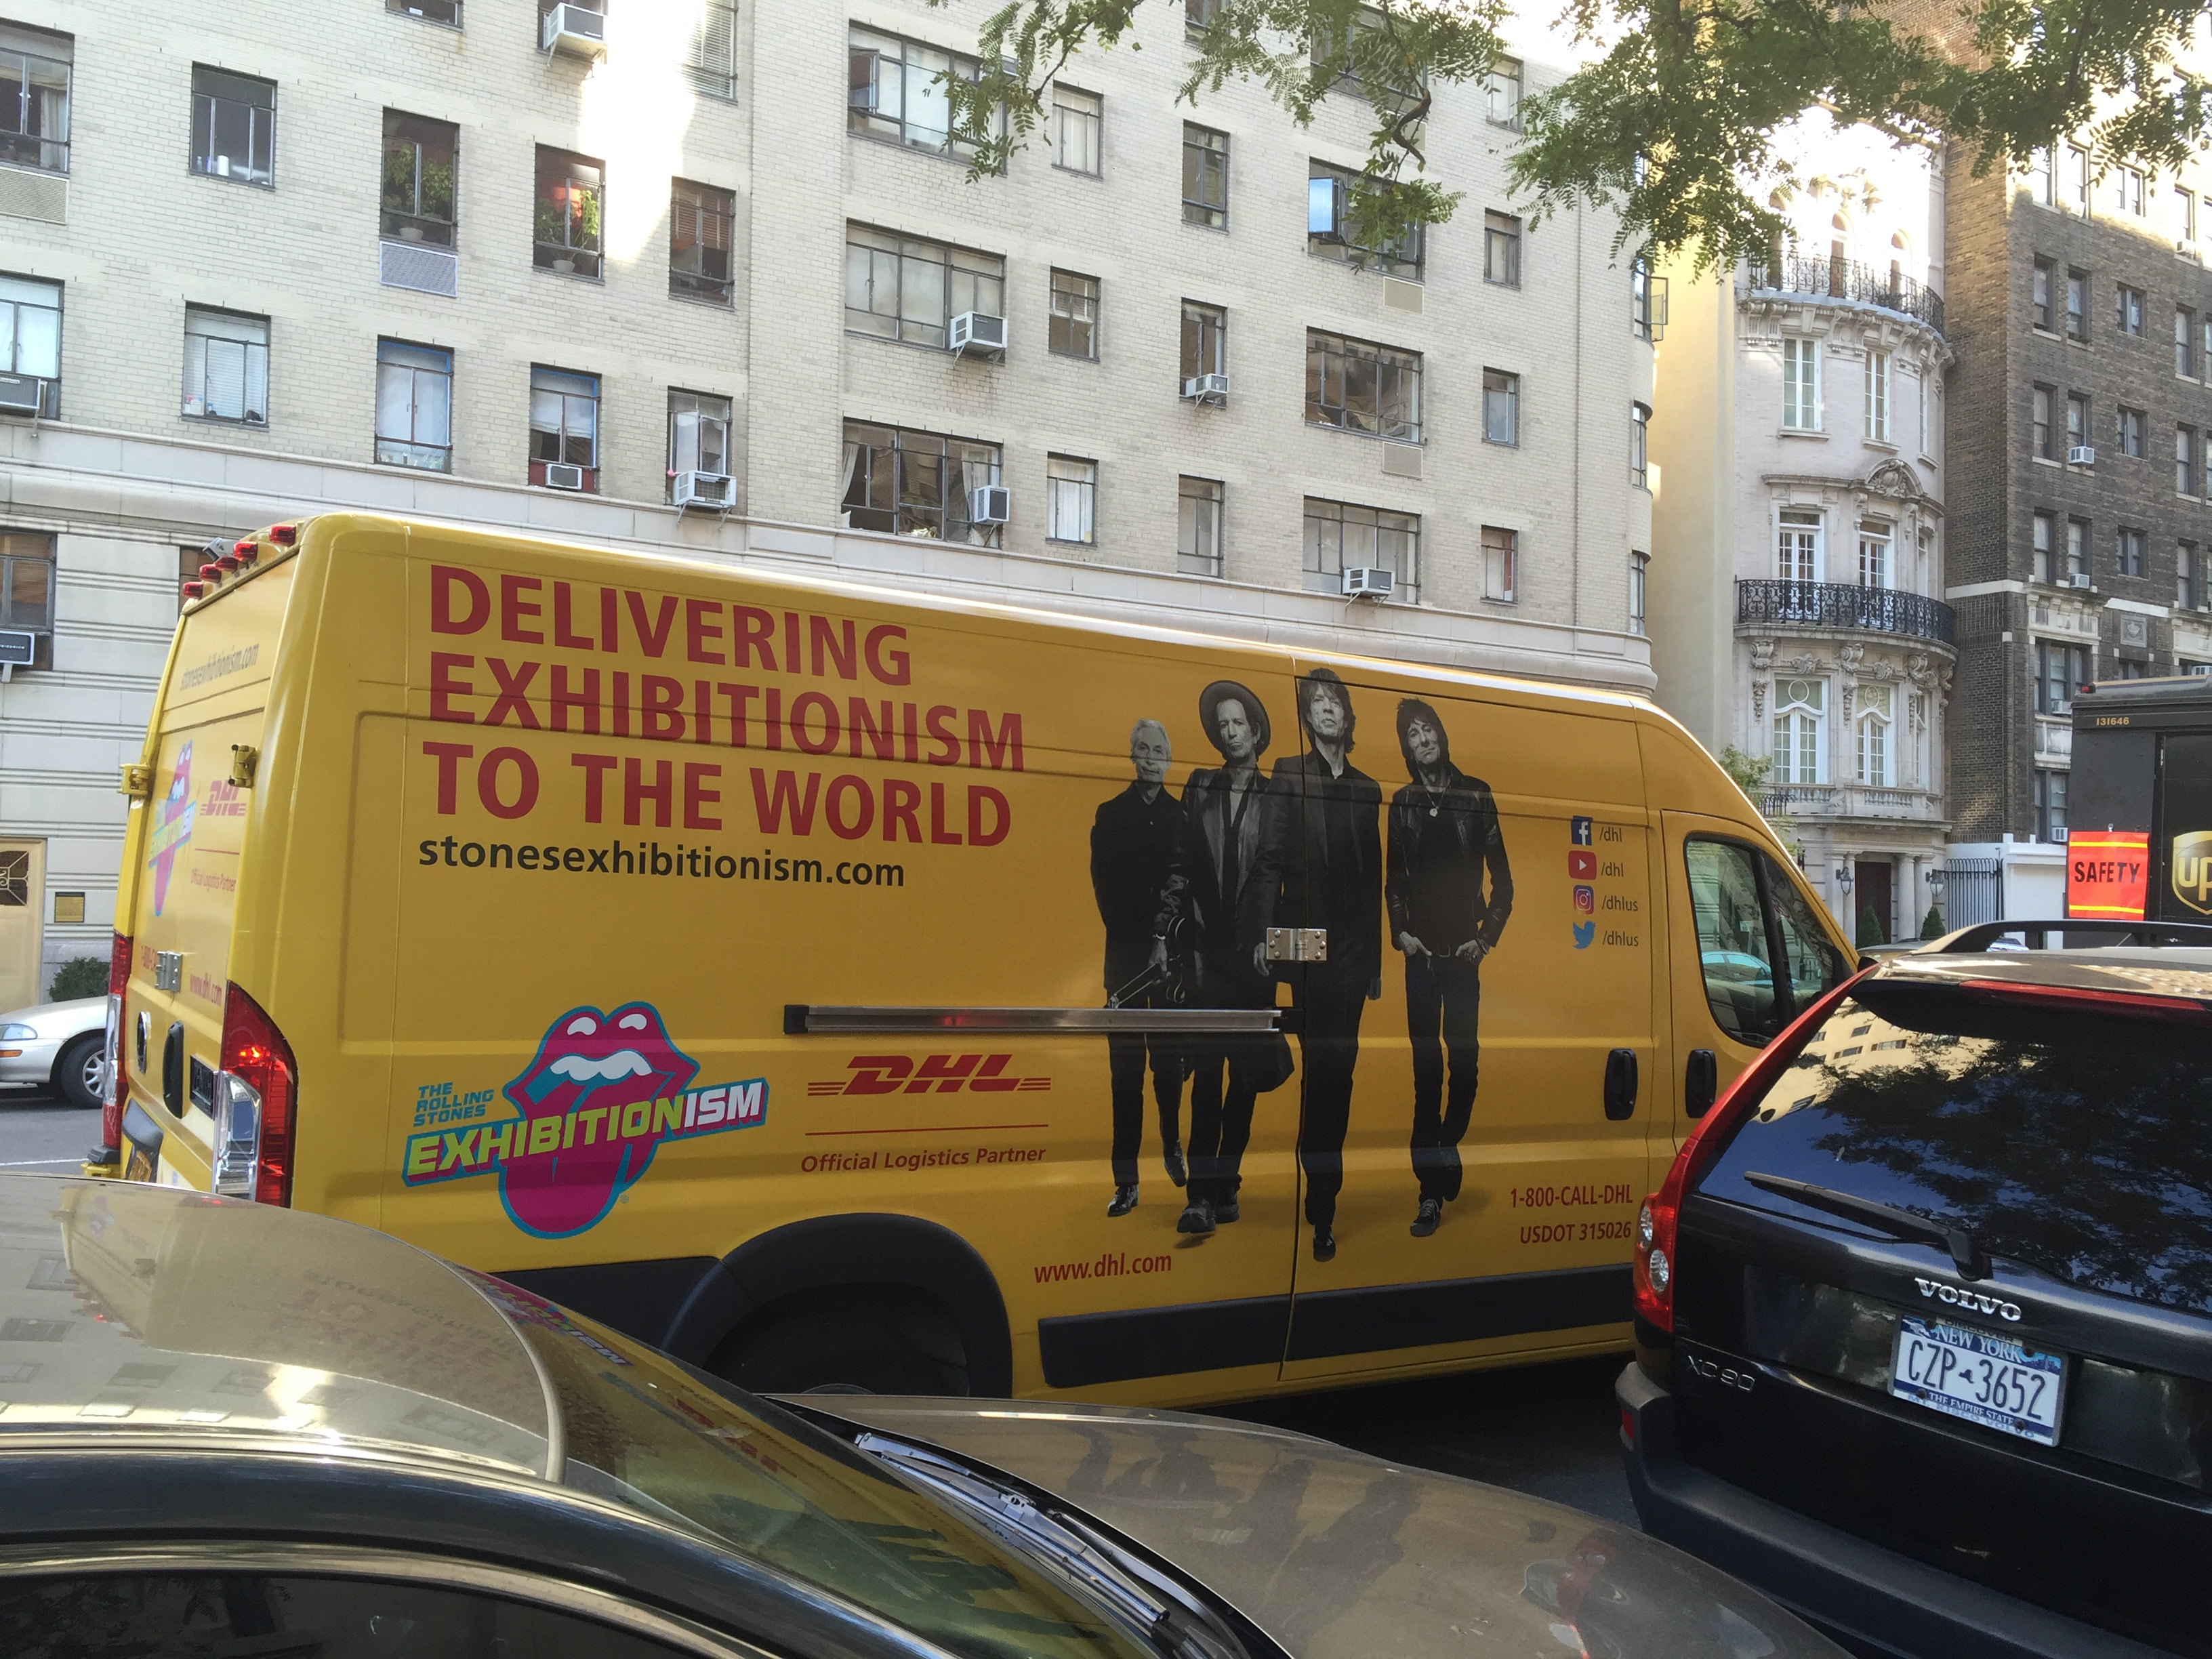 Rolling Stones Exhibitionism DHL van in New York City, October 2016 (Photo: Greg Brodsky)